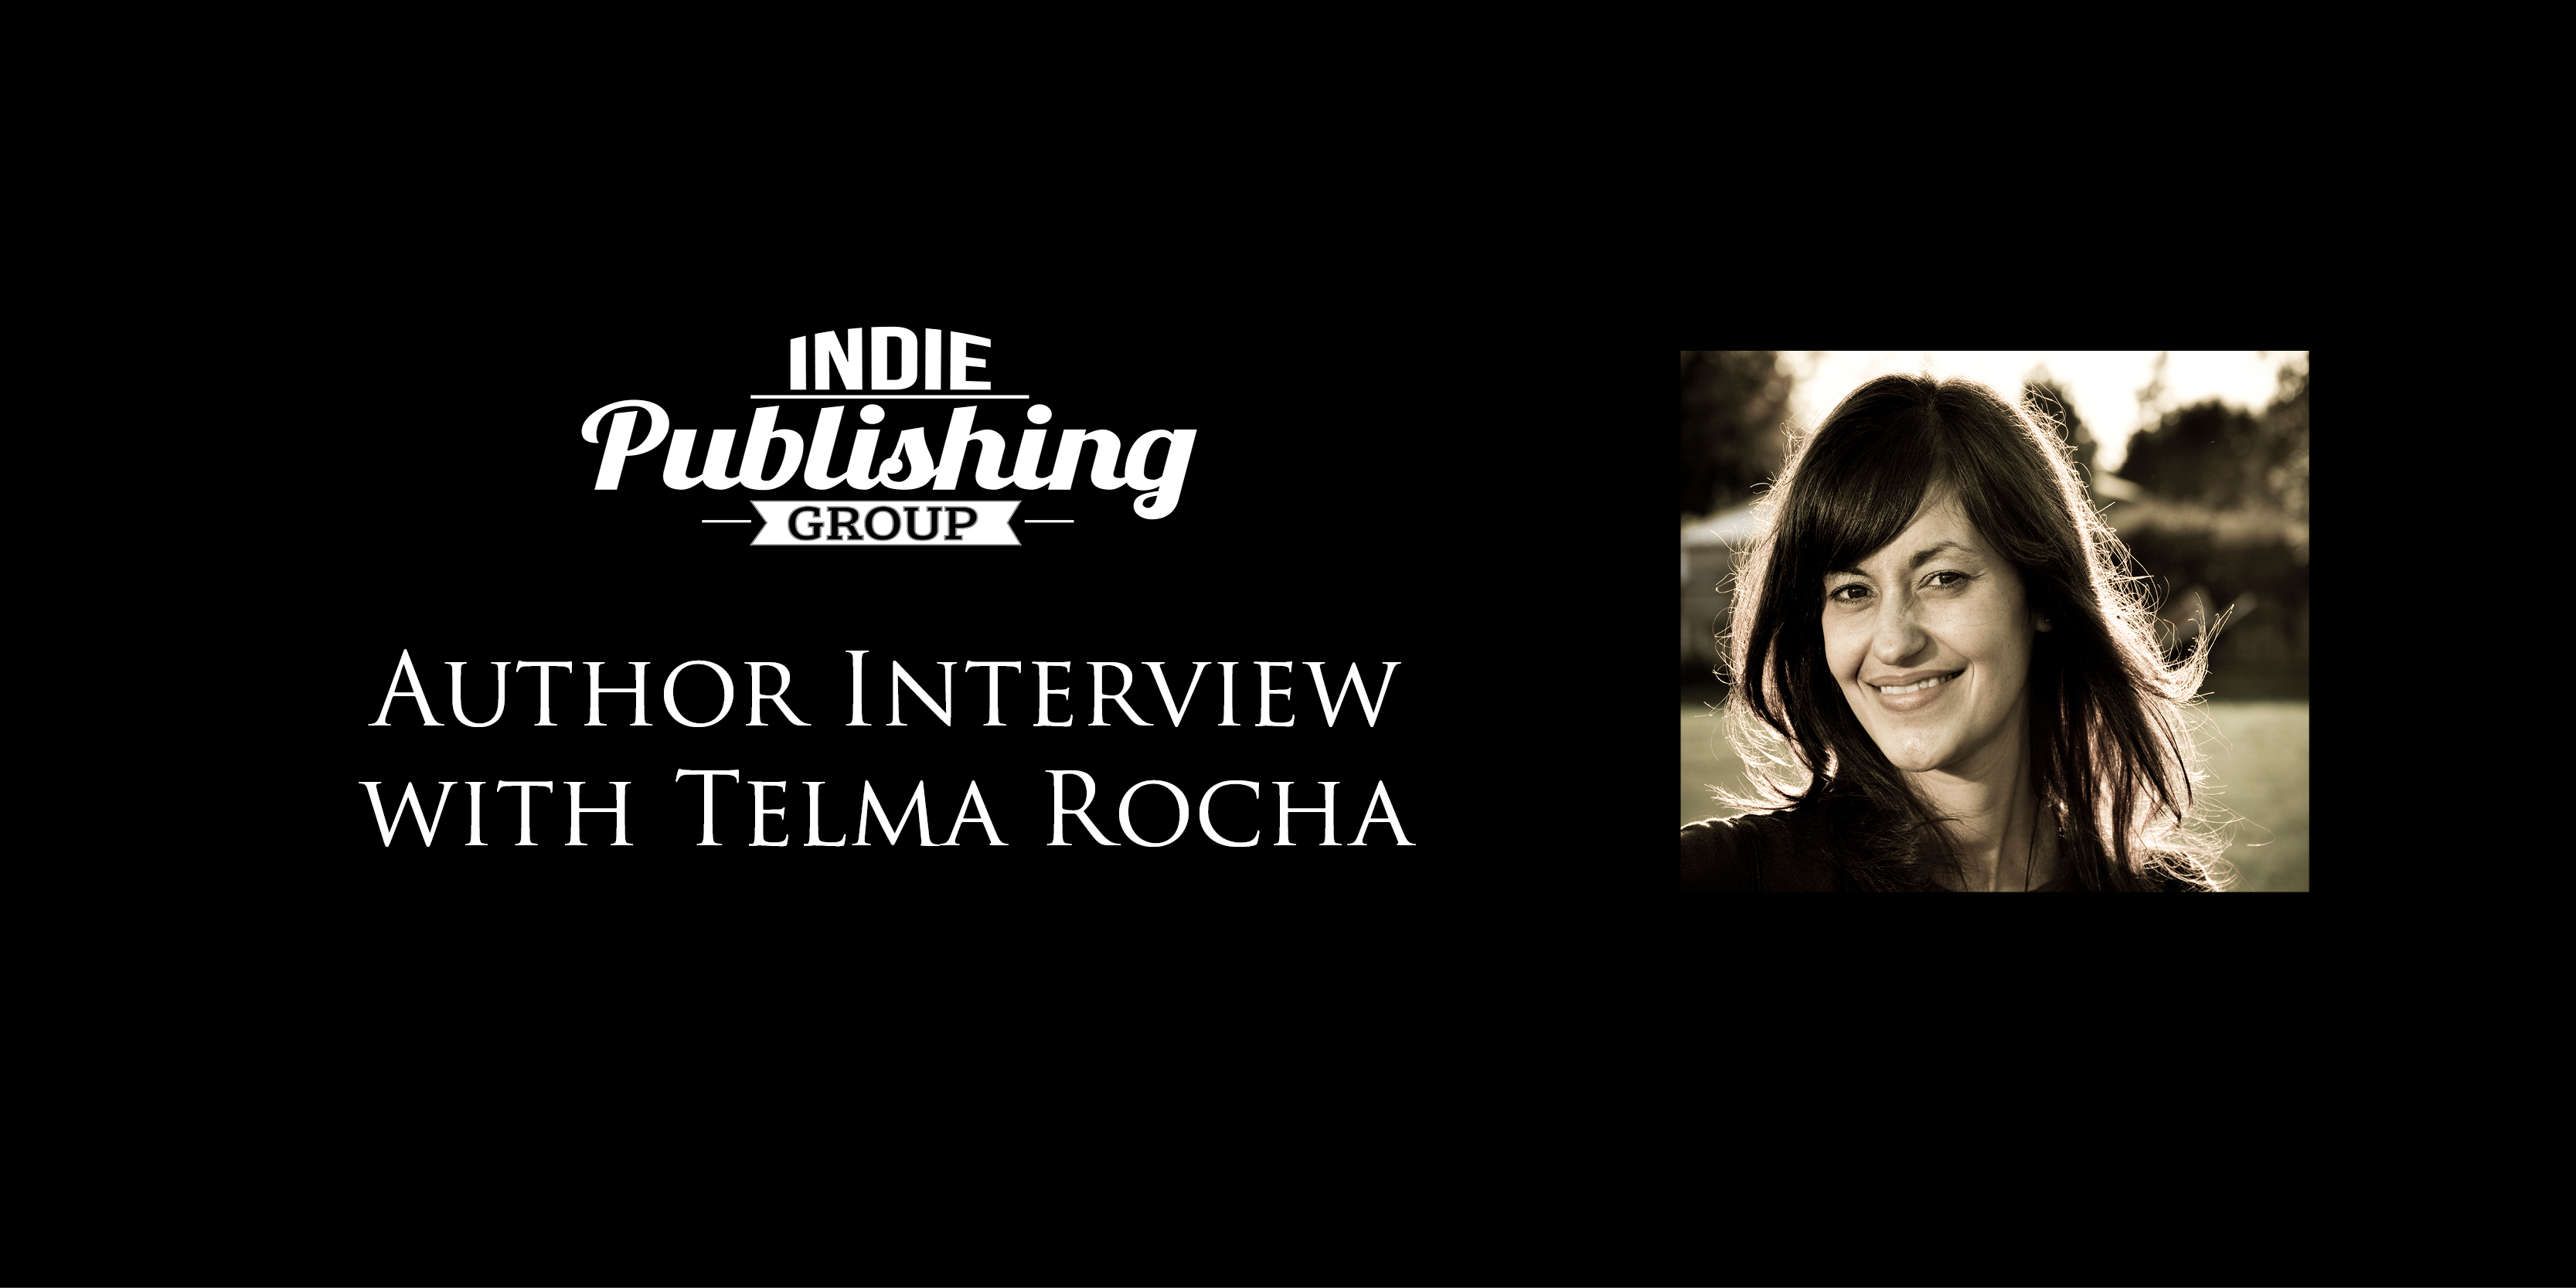 Author Interview with Telma Rocha!